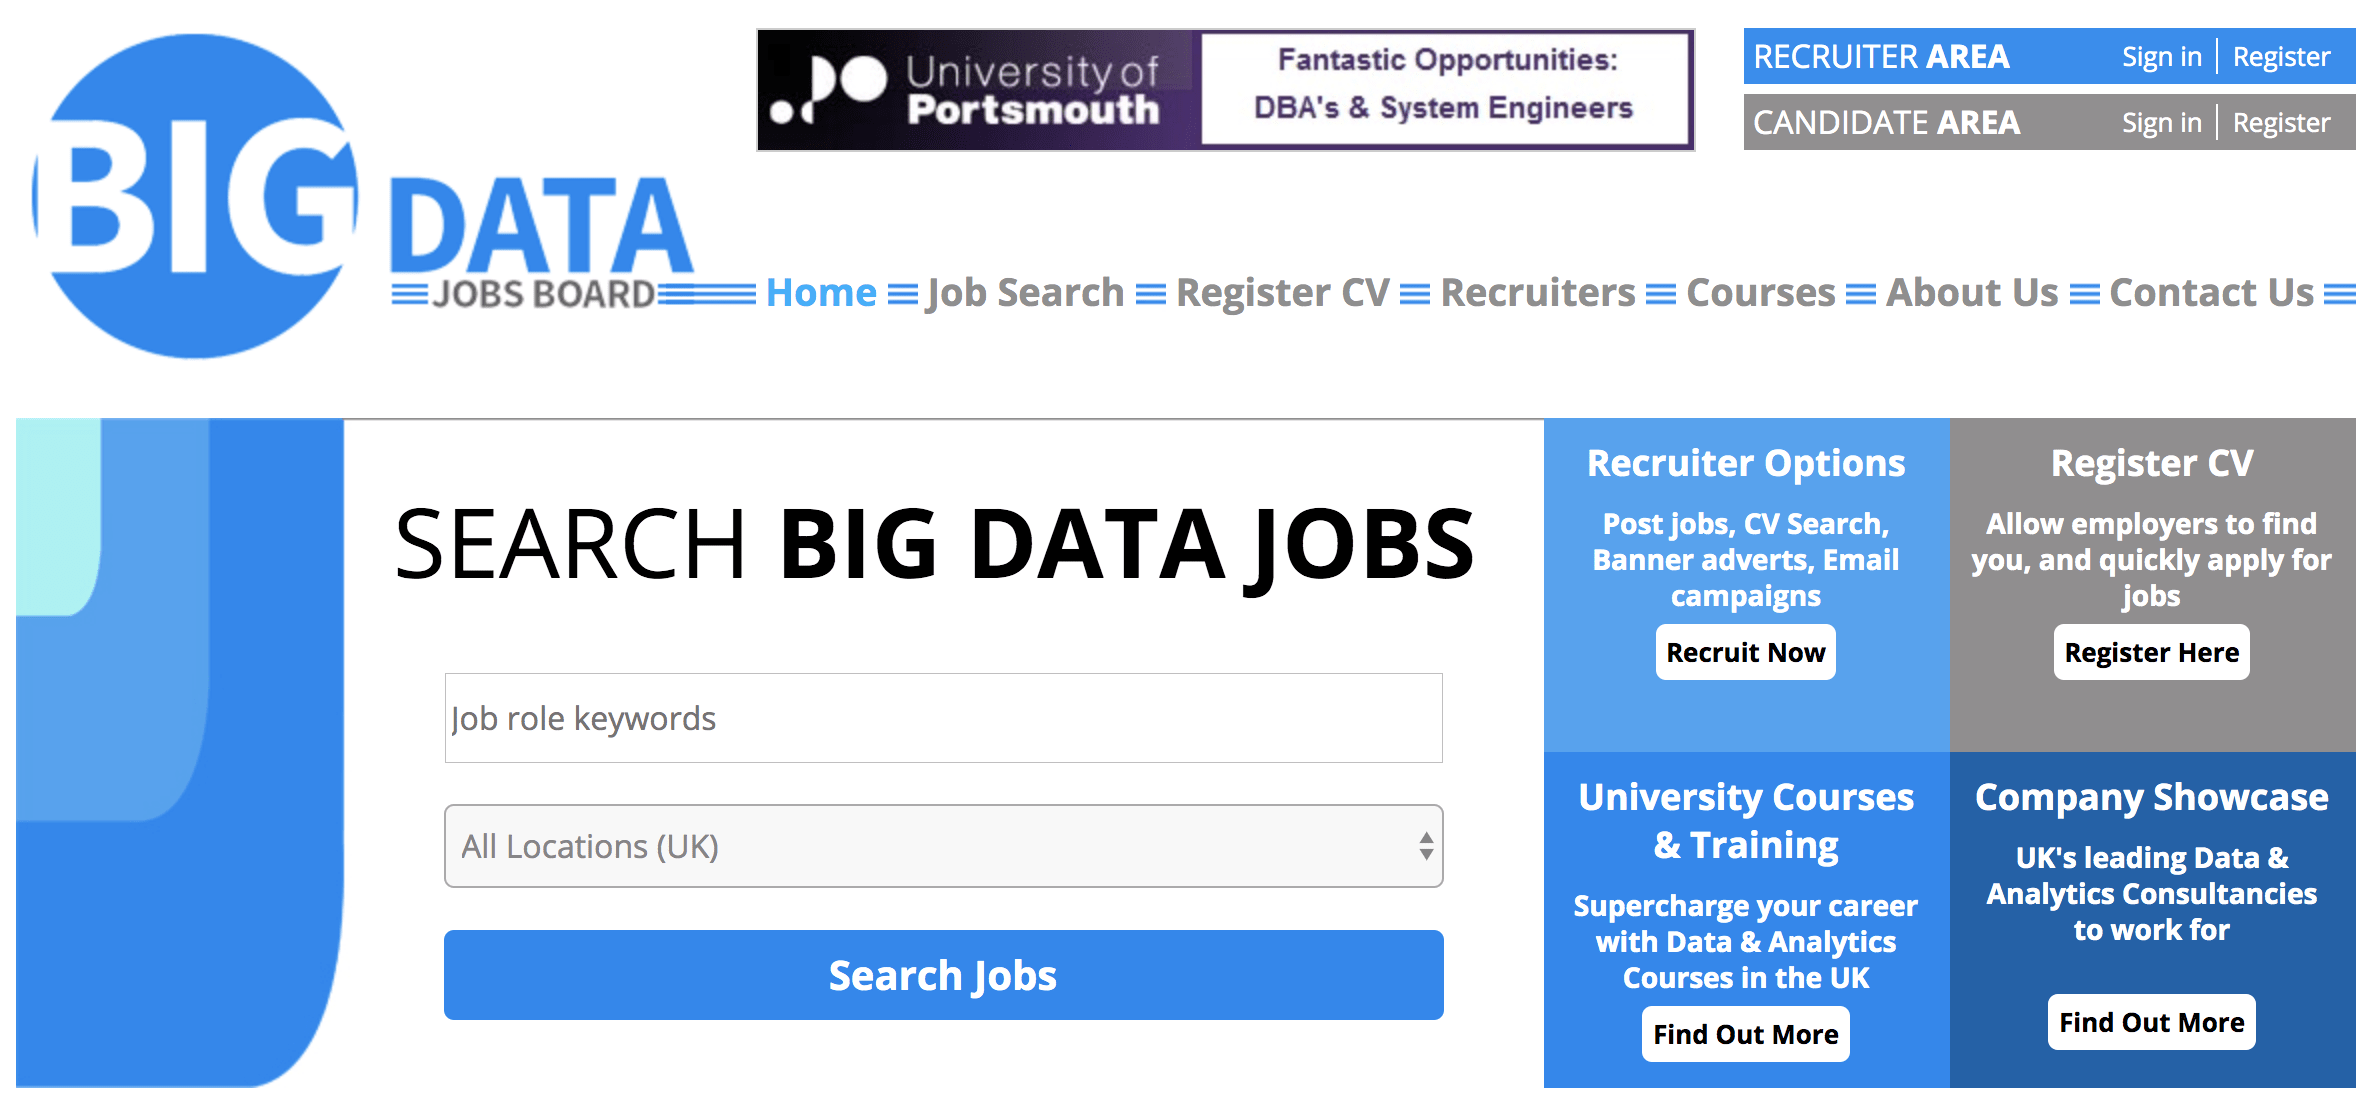 Big Data Jobs Board